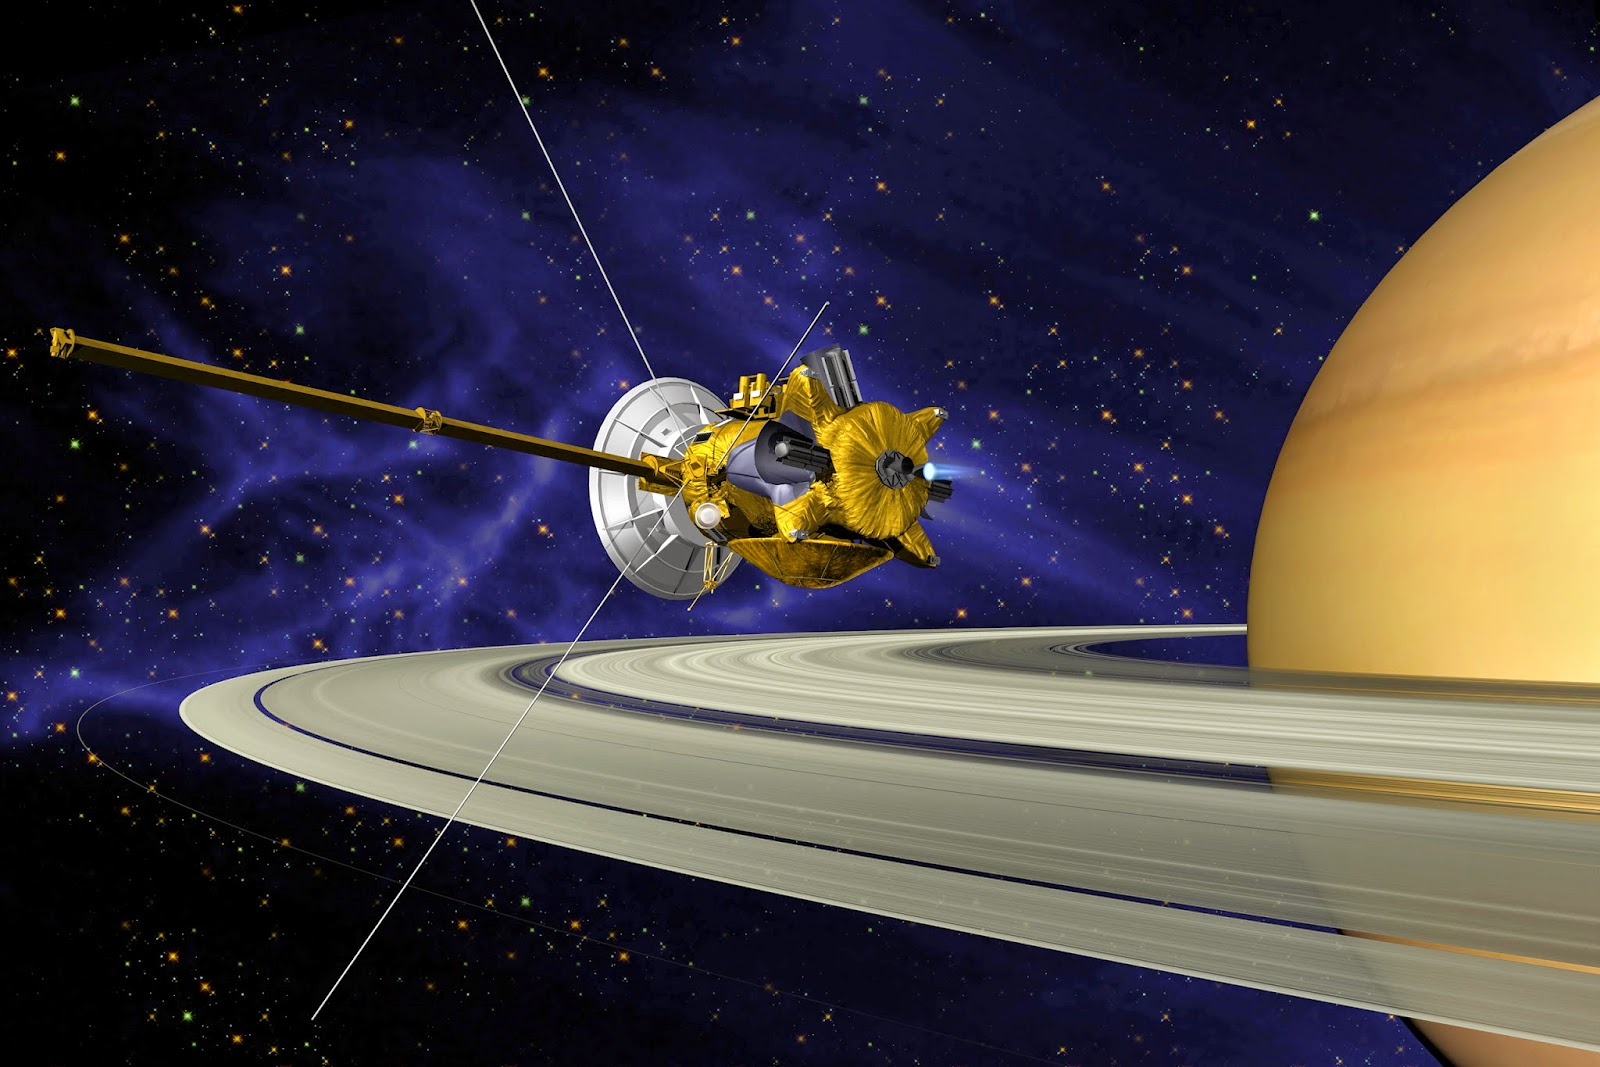 This is an artist's concept of Cassini spacecraft during the Saturn Orbit Insertion (SOI) maneuver, just after the main engine has begun firing. Credit: NASA/JPL